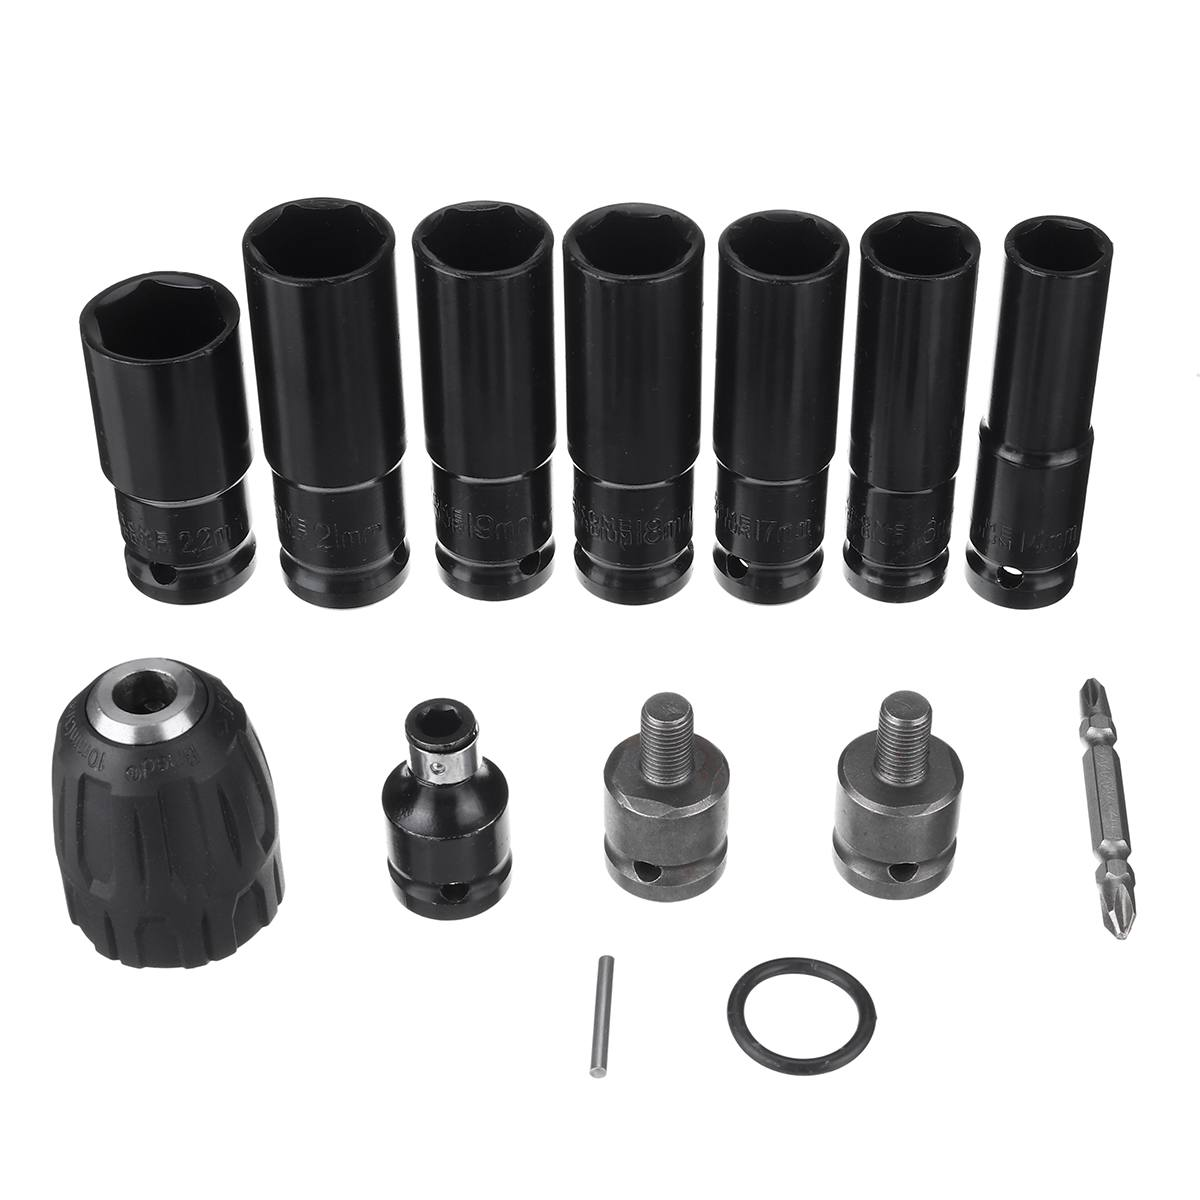 14 In 1  7 Sleeve 14-22mm Electric Wrench Hex Socket Head Set Kit Electric Wrench Adapter For Impact Wrench Drill